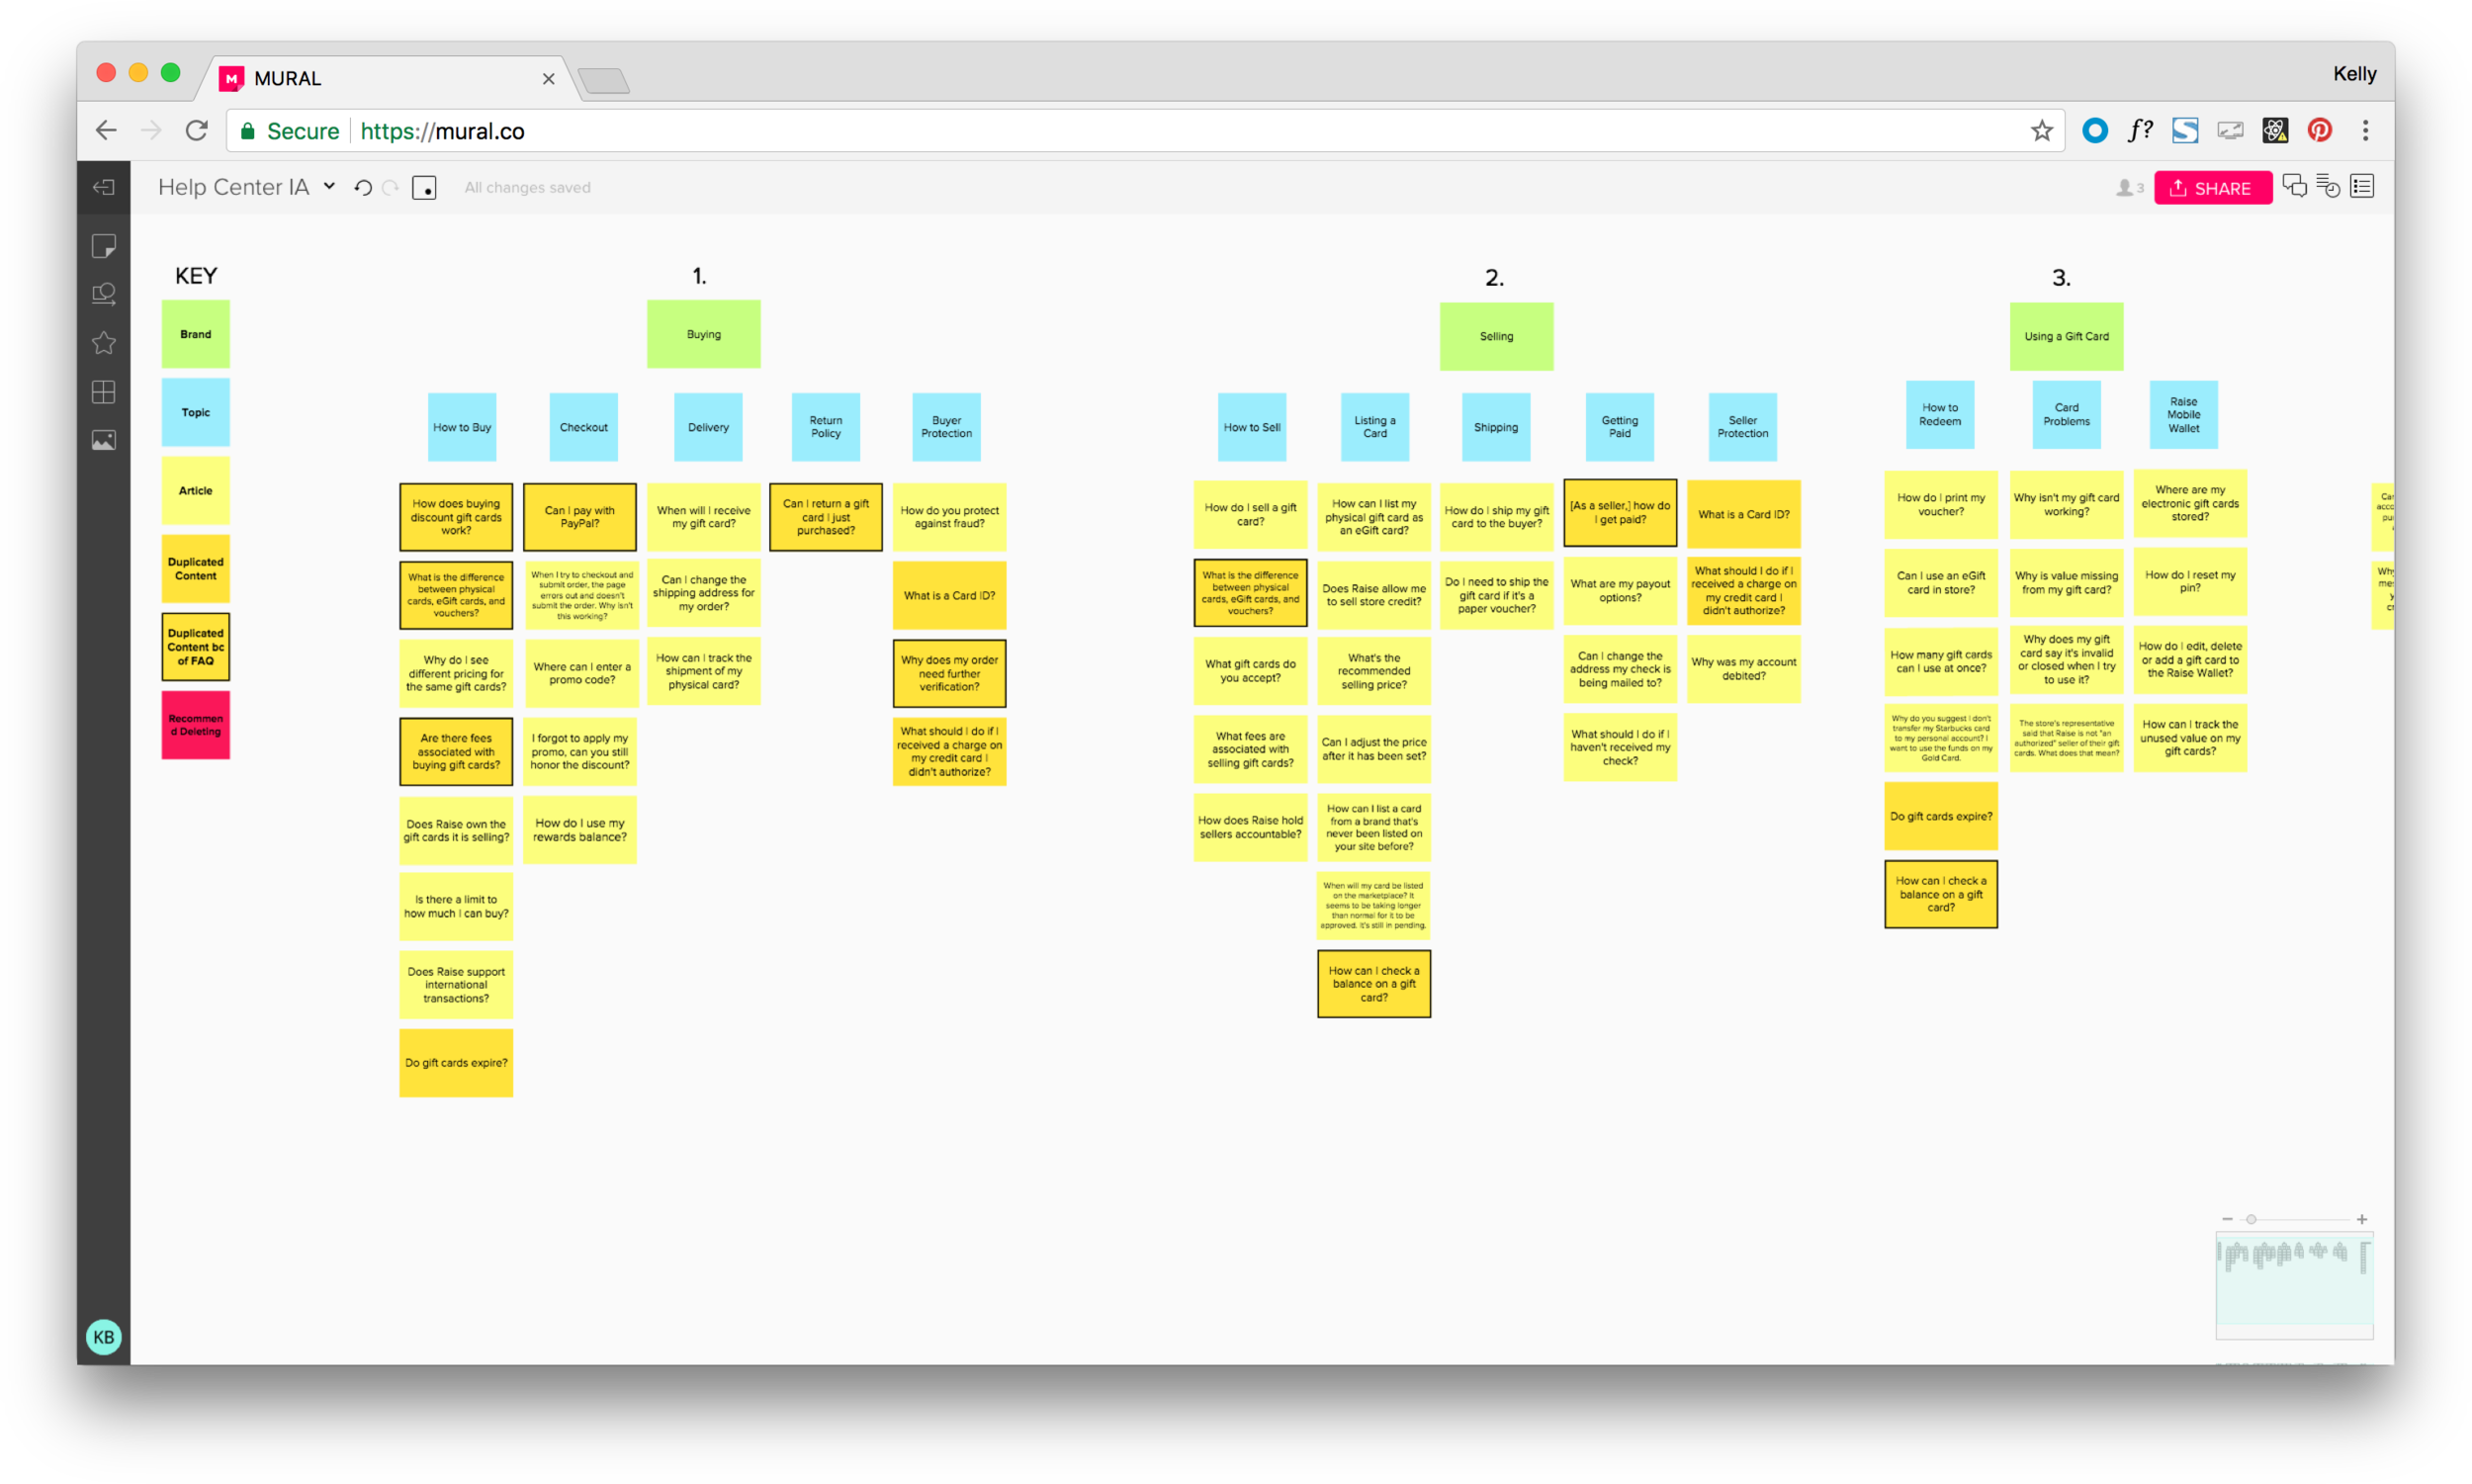 Once our copy was finessed, I began to assess each content piece in order to preform affinity mapping. Through this process, we had created our final information architecture for the Help Center. I used the online tool Mural so that these clusters were easily sharable digitally across multiple stakeholder groups.